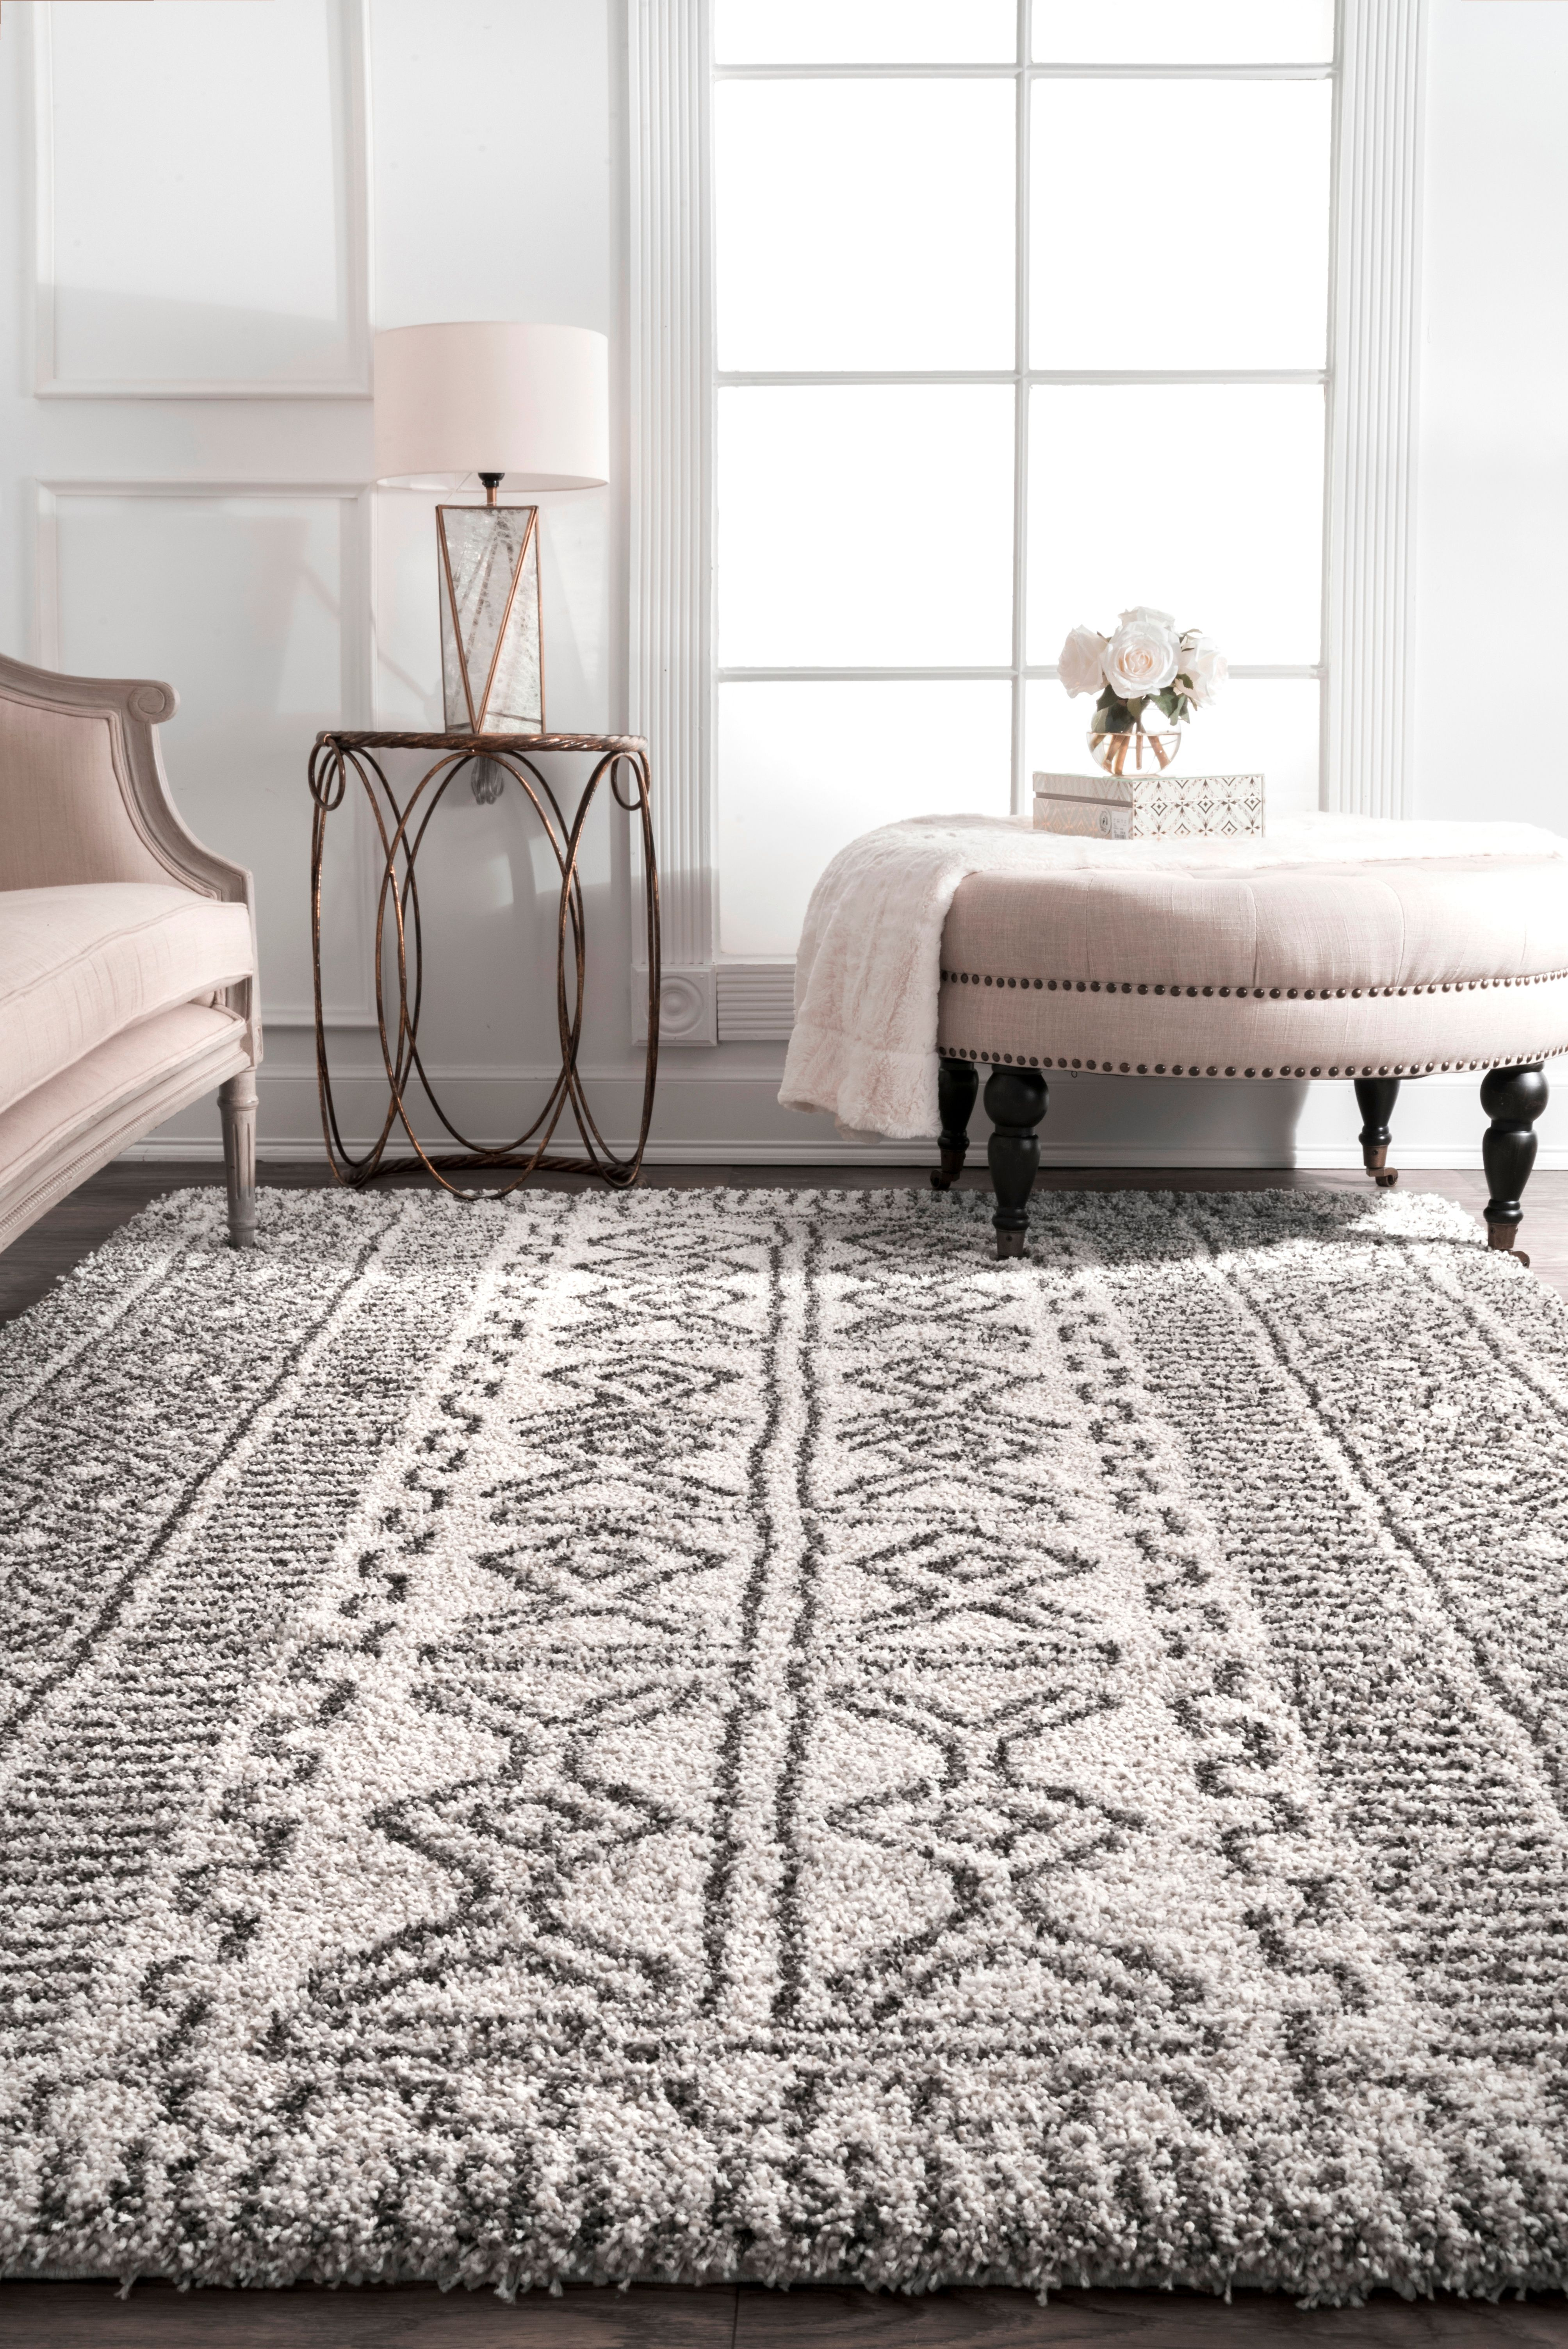 Dimora Moroccan Tribal Ivory Rug Rugs Usa Rugs In Living Room Tribal Area Rug Area rugs made in usa